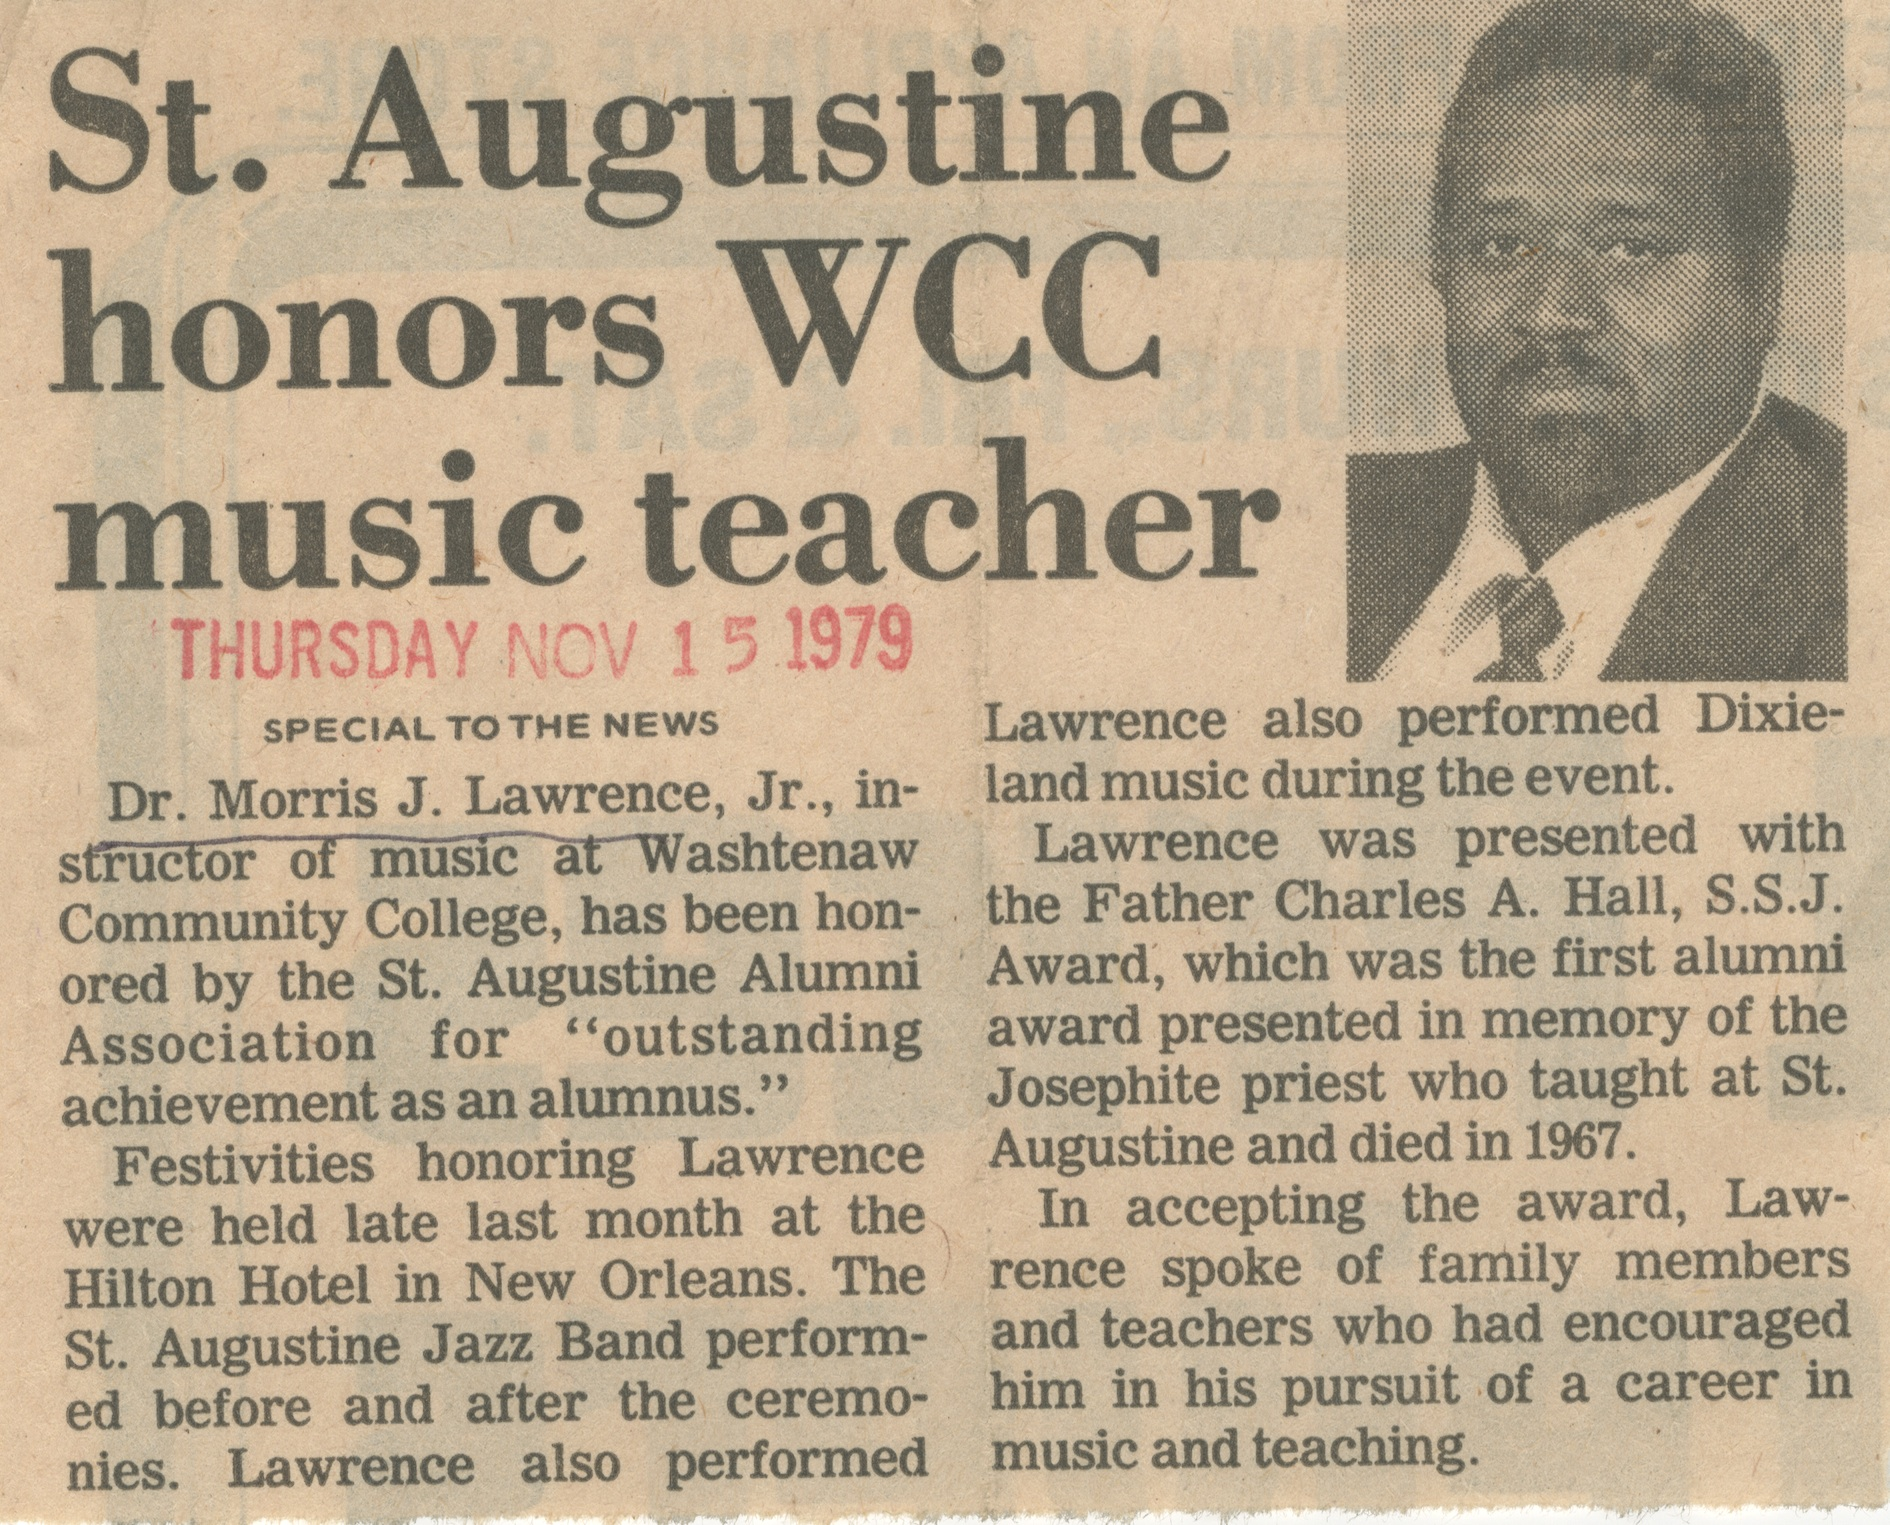 St. Augustine honors WCC music teacher image